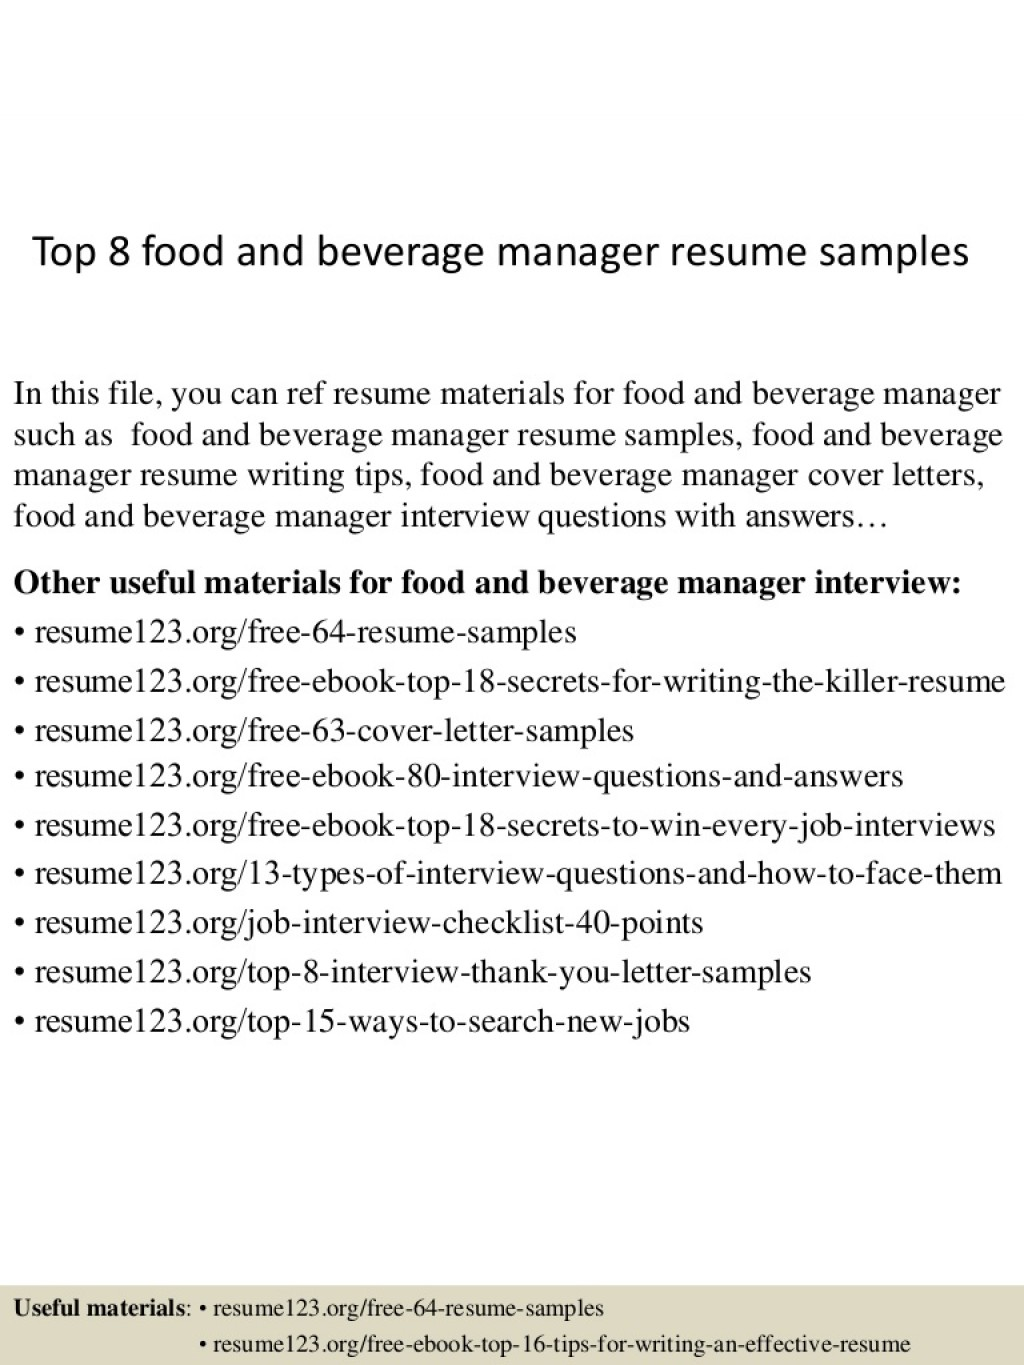 017 Top8foodandbeveragemanagerresumesamples Conversion Gate02 Thumbnail 4cbu003d1429946005 Research Paper Persuasive Astounding Papers Interesting Topics For Large